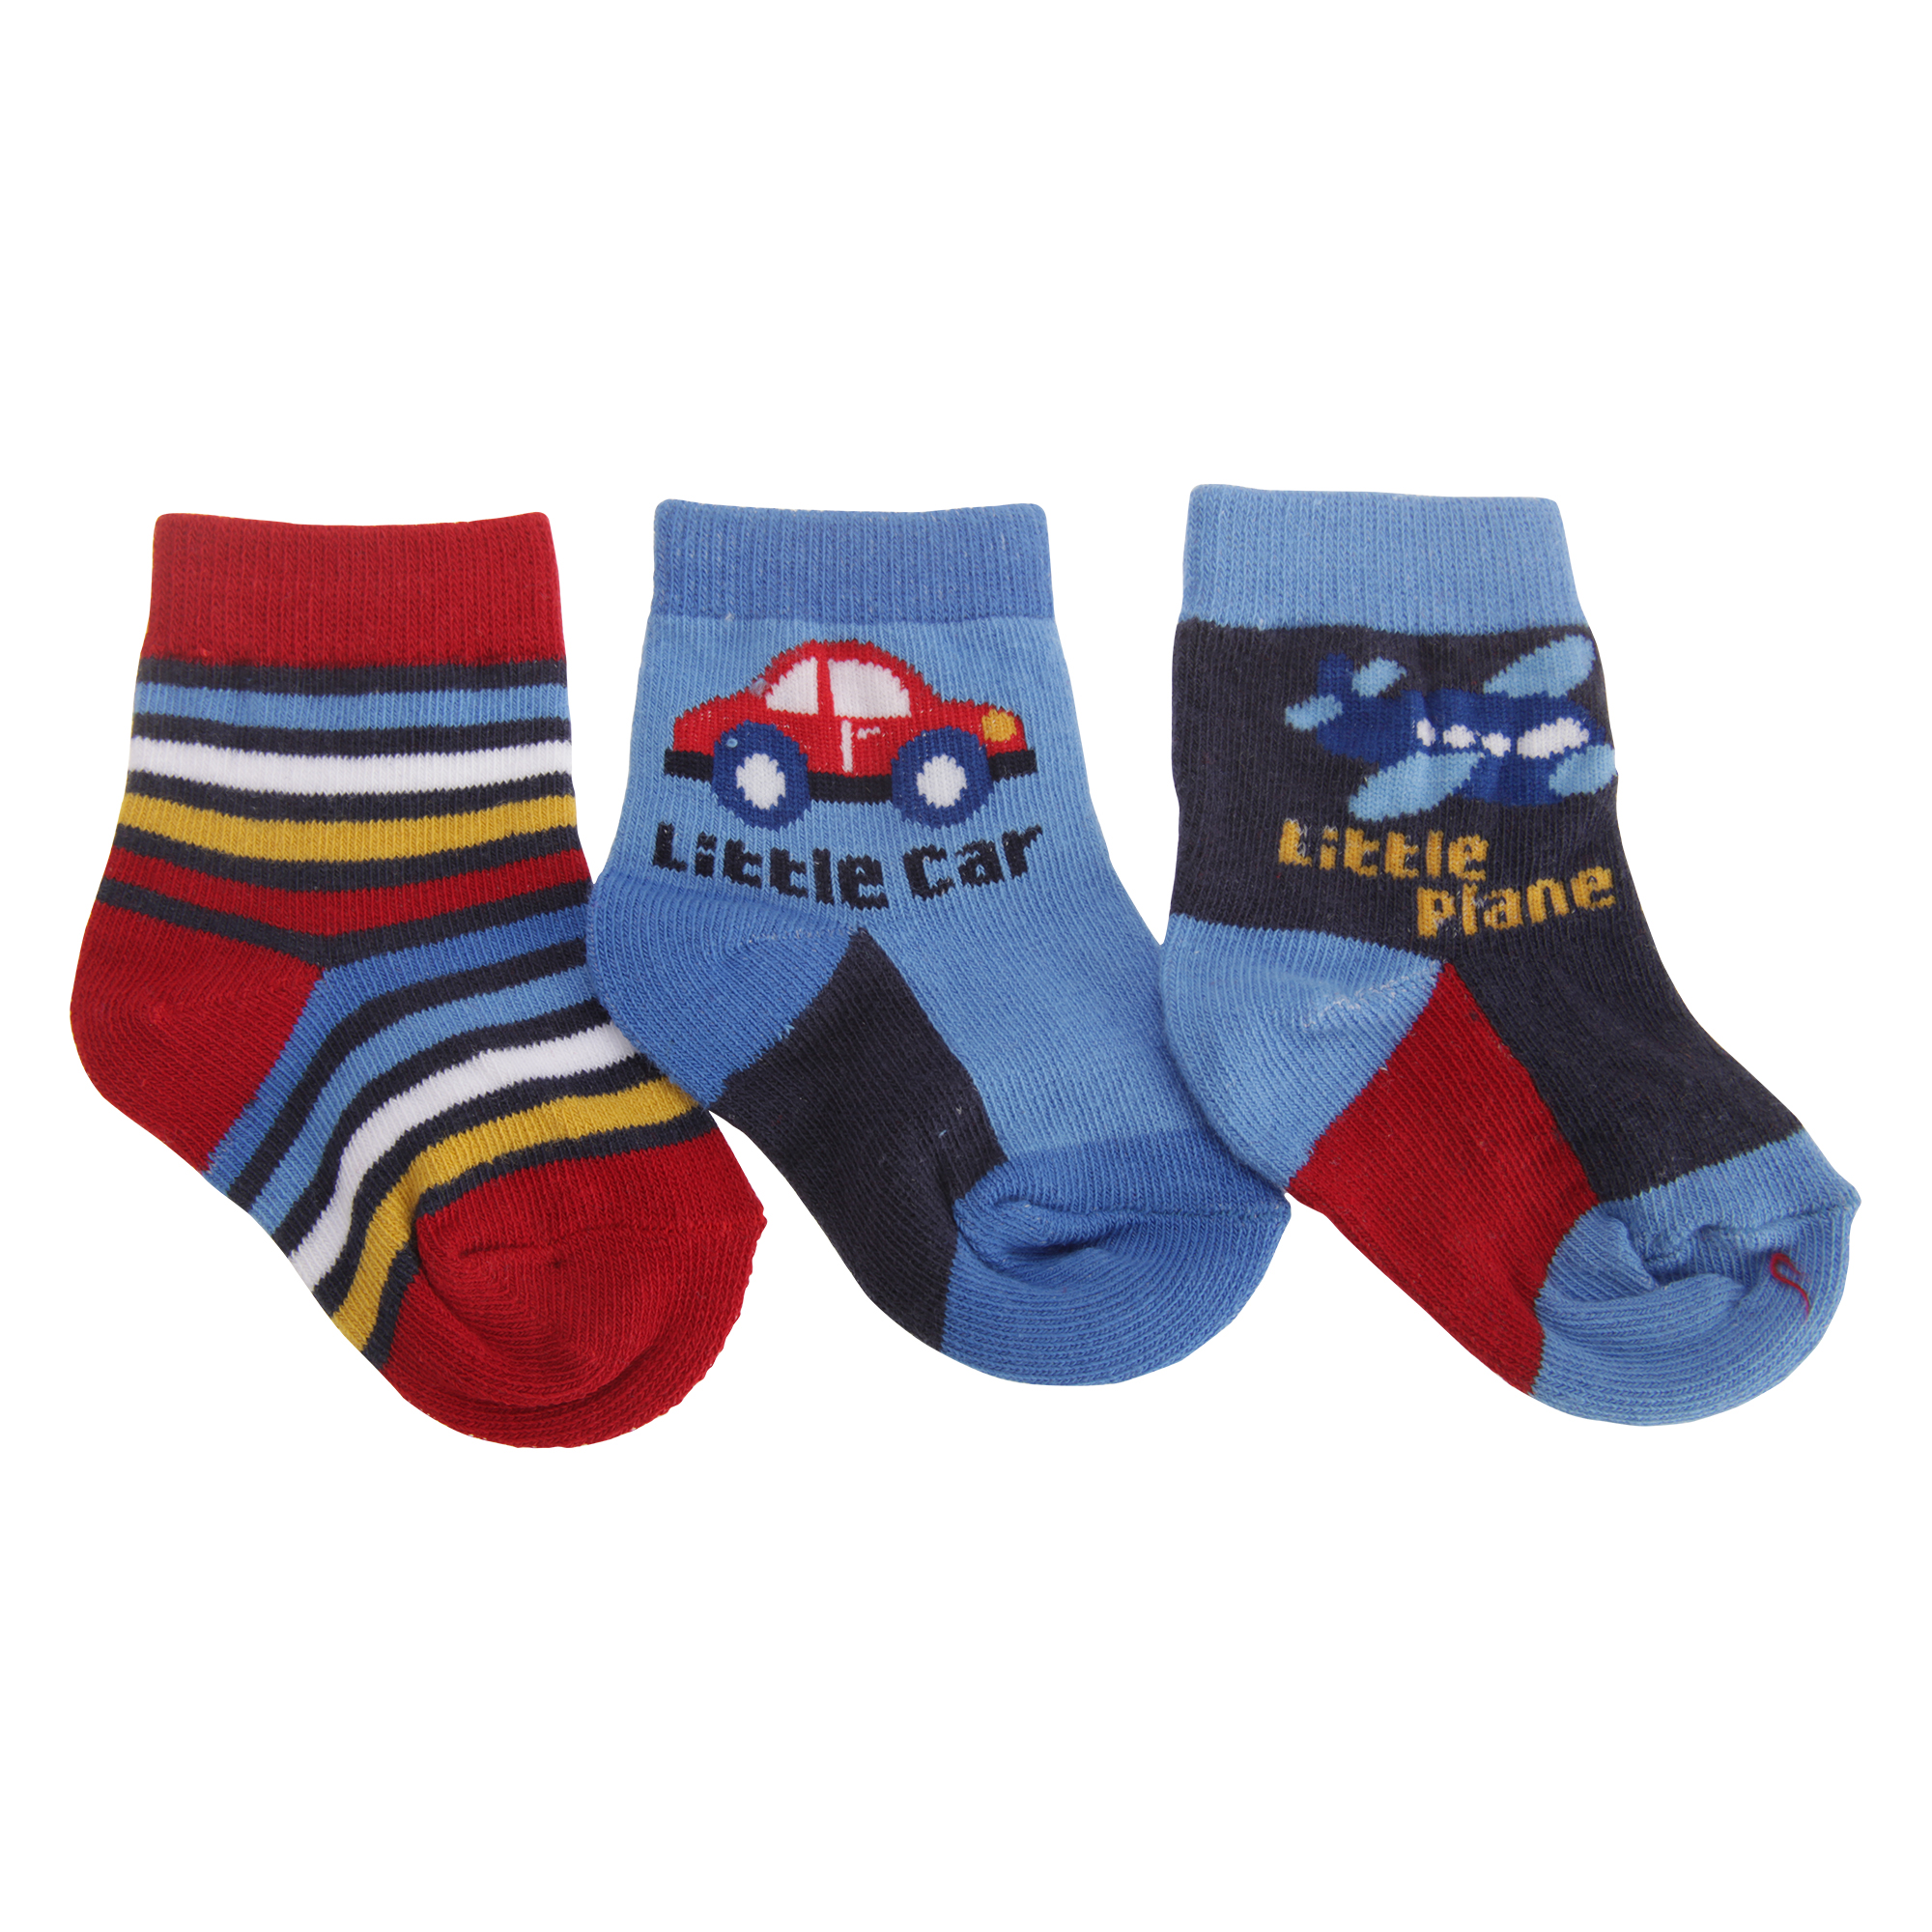 BABY1366 Baby Boys Vehicle Patterned Socks Pack Of 3